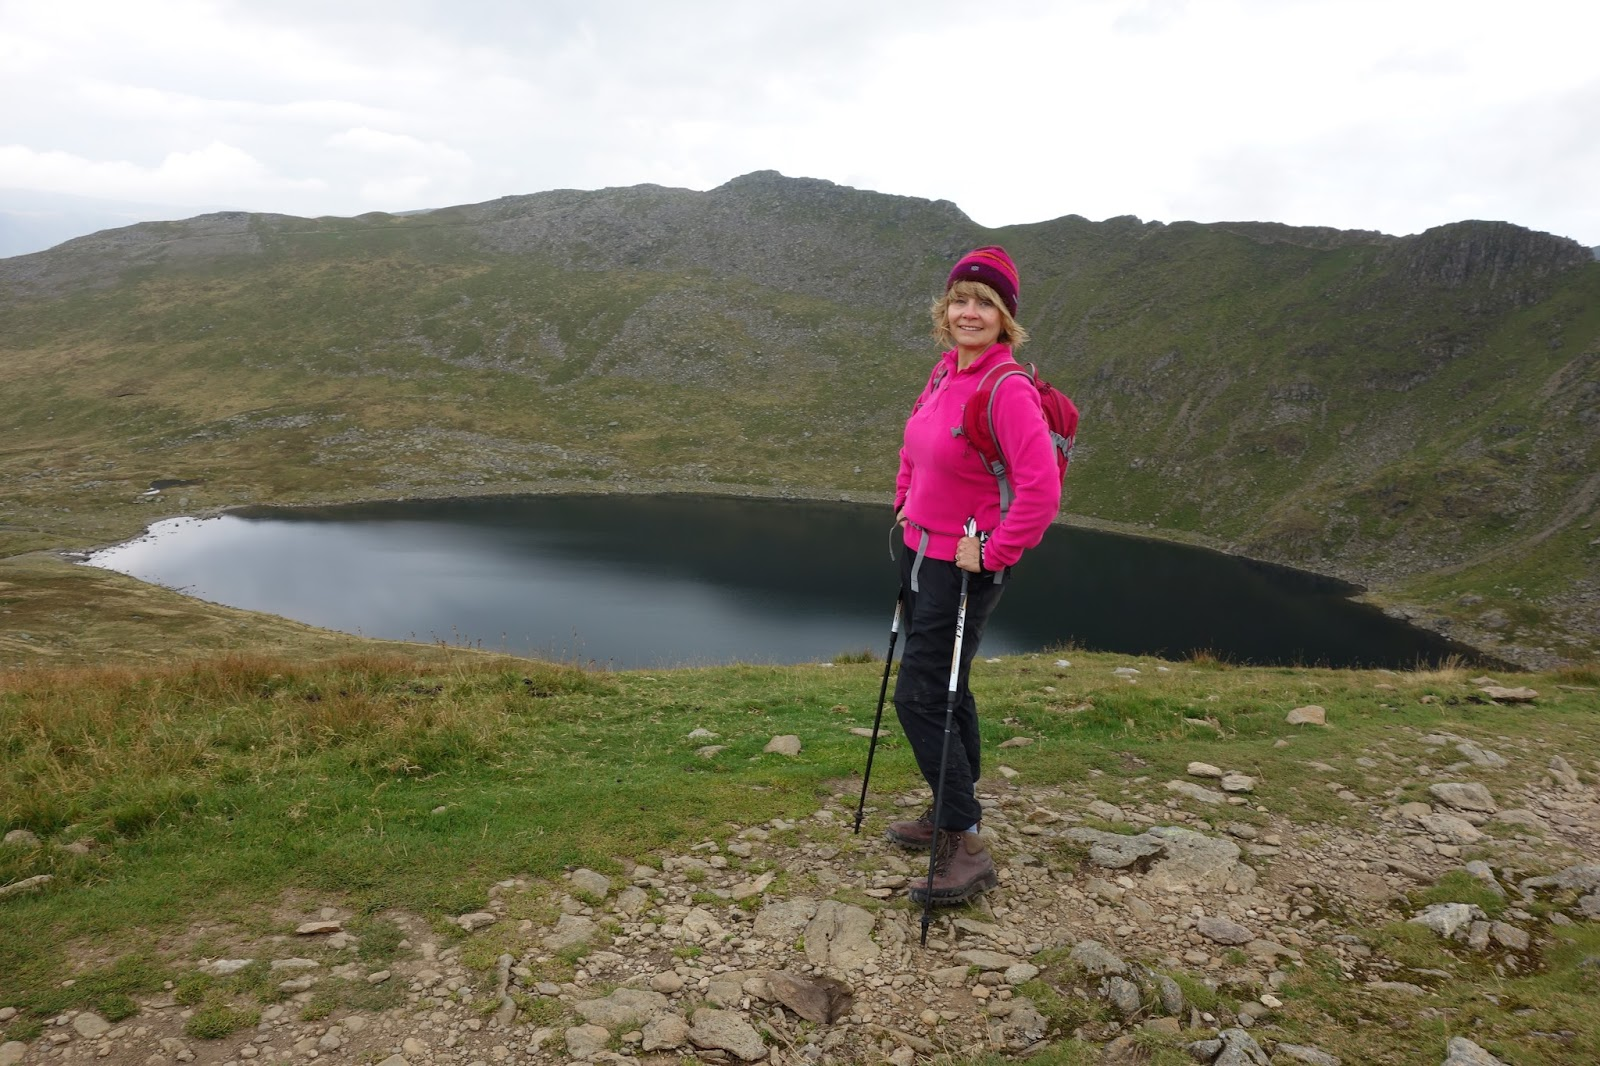 Gail Hanlon from Is This Mutton? after climbing Helvellyn and Striding Edge, in pink North Face fleece and Sherpa hat